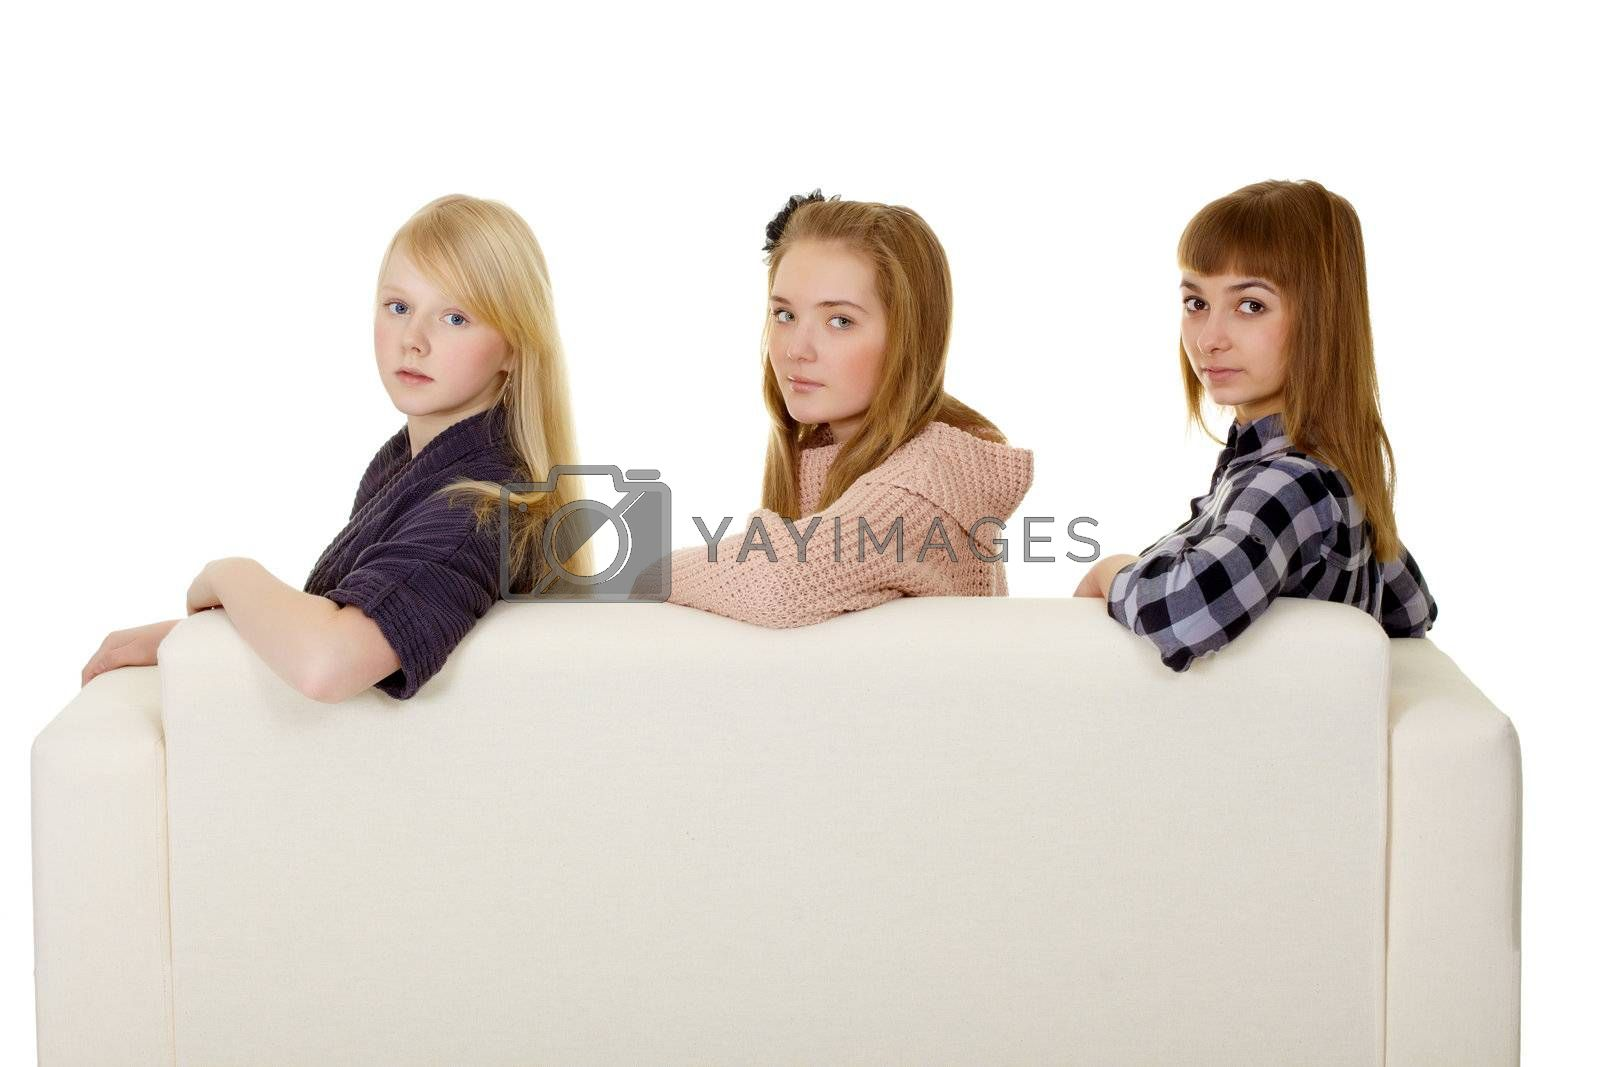 Three young girls - classmate sitting on the couch